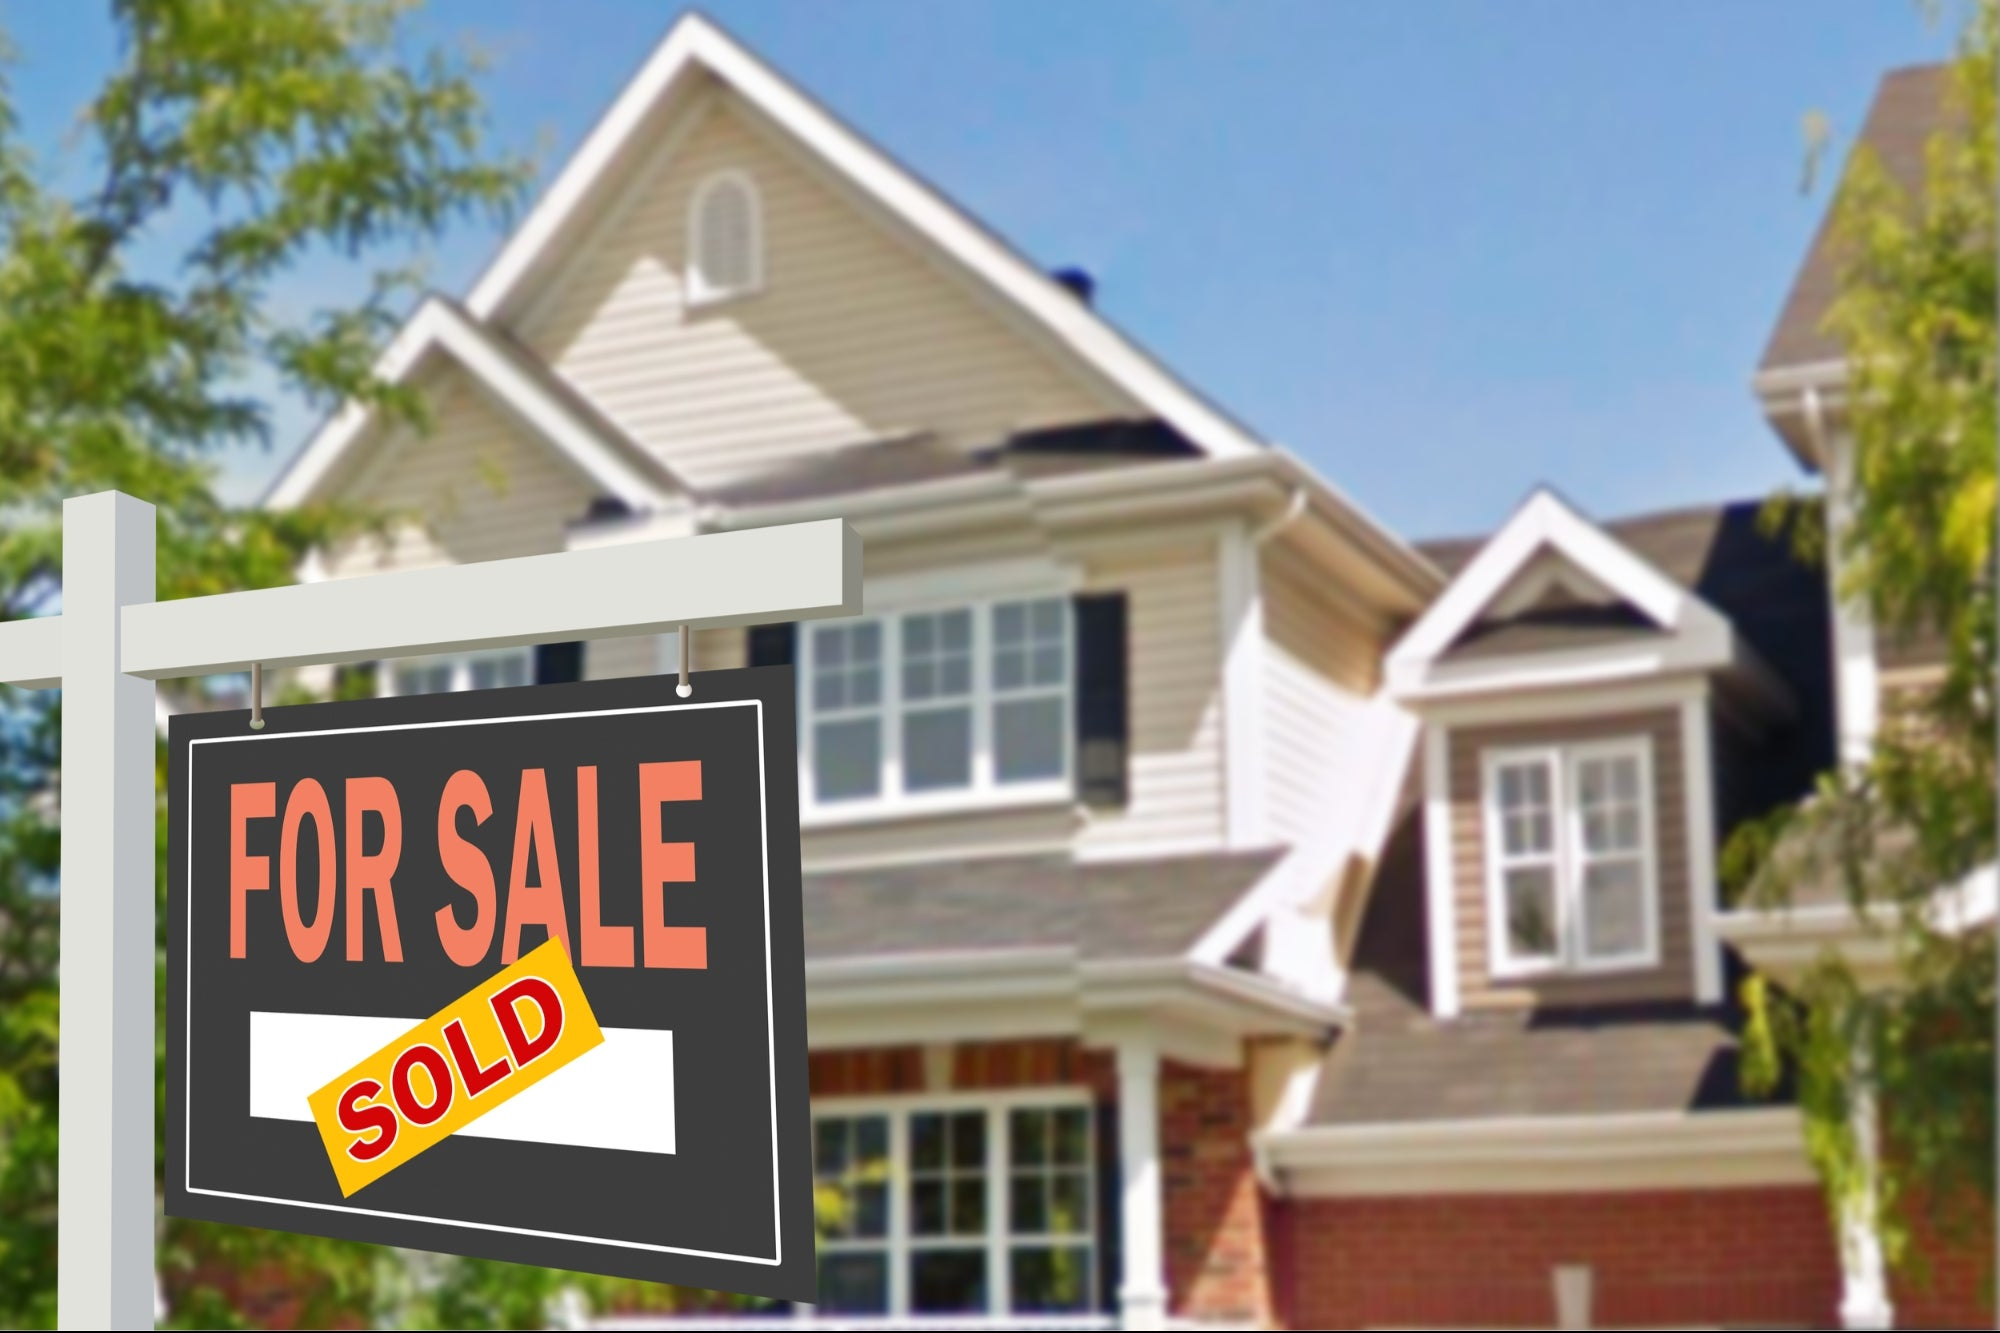 Single-Family Home Prices Soar by 23 Percent, Sharpest Rise on Record